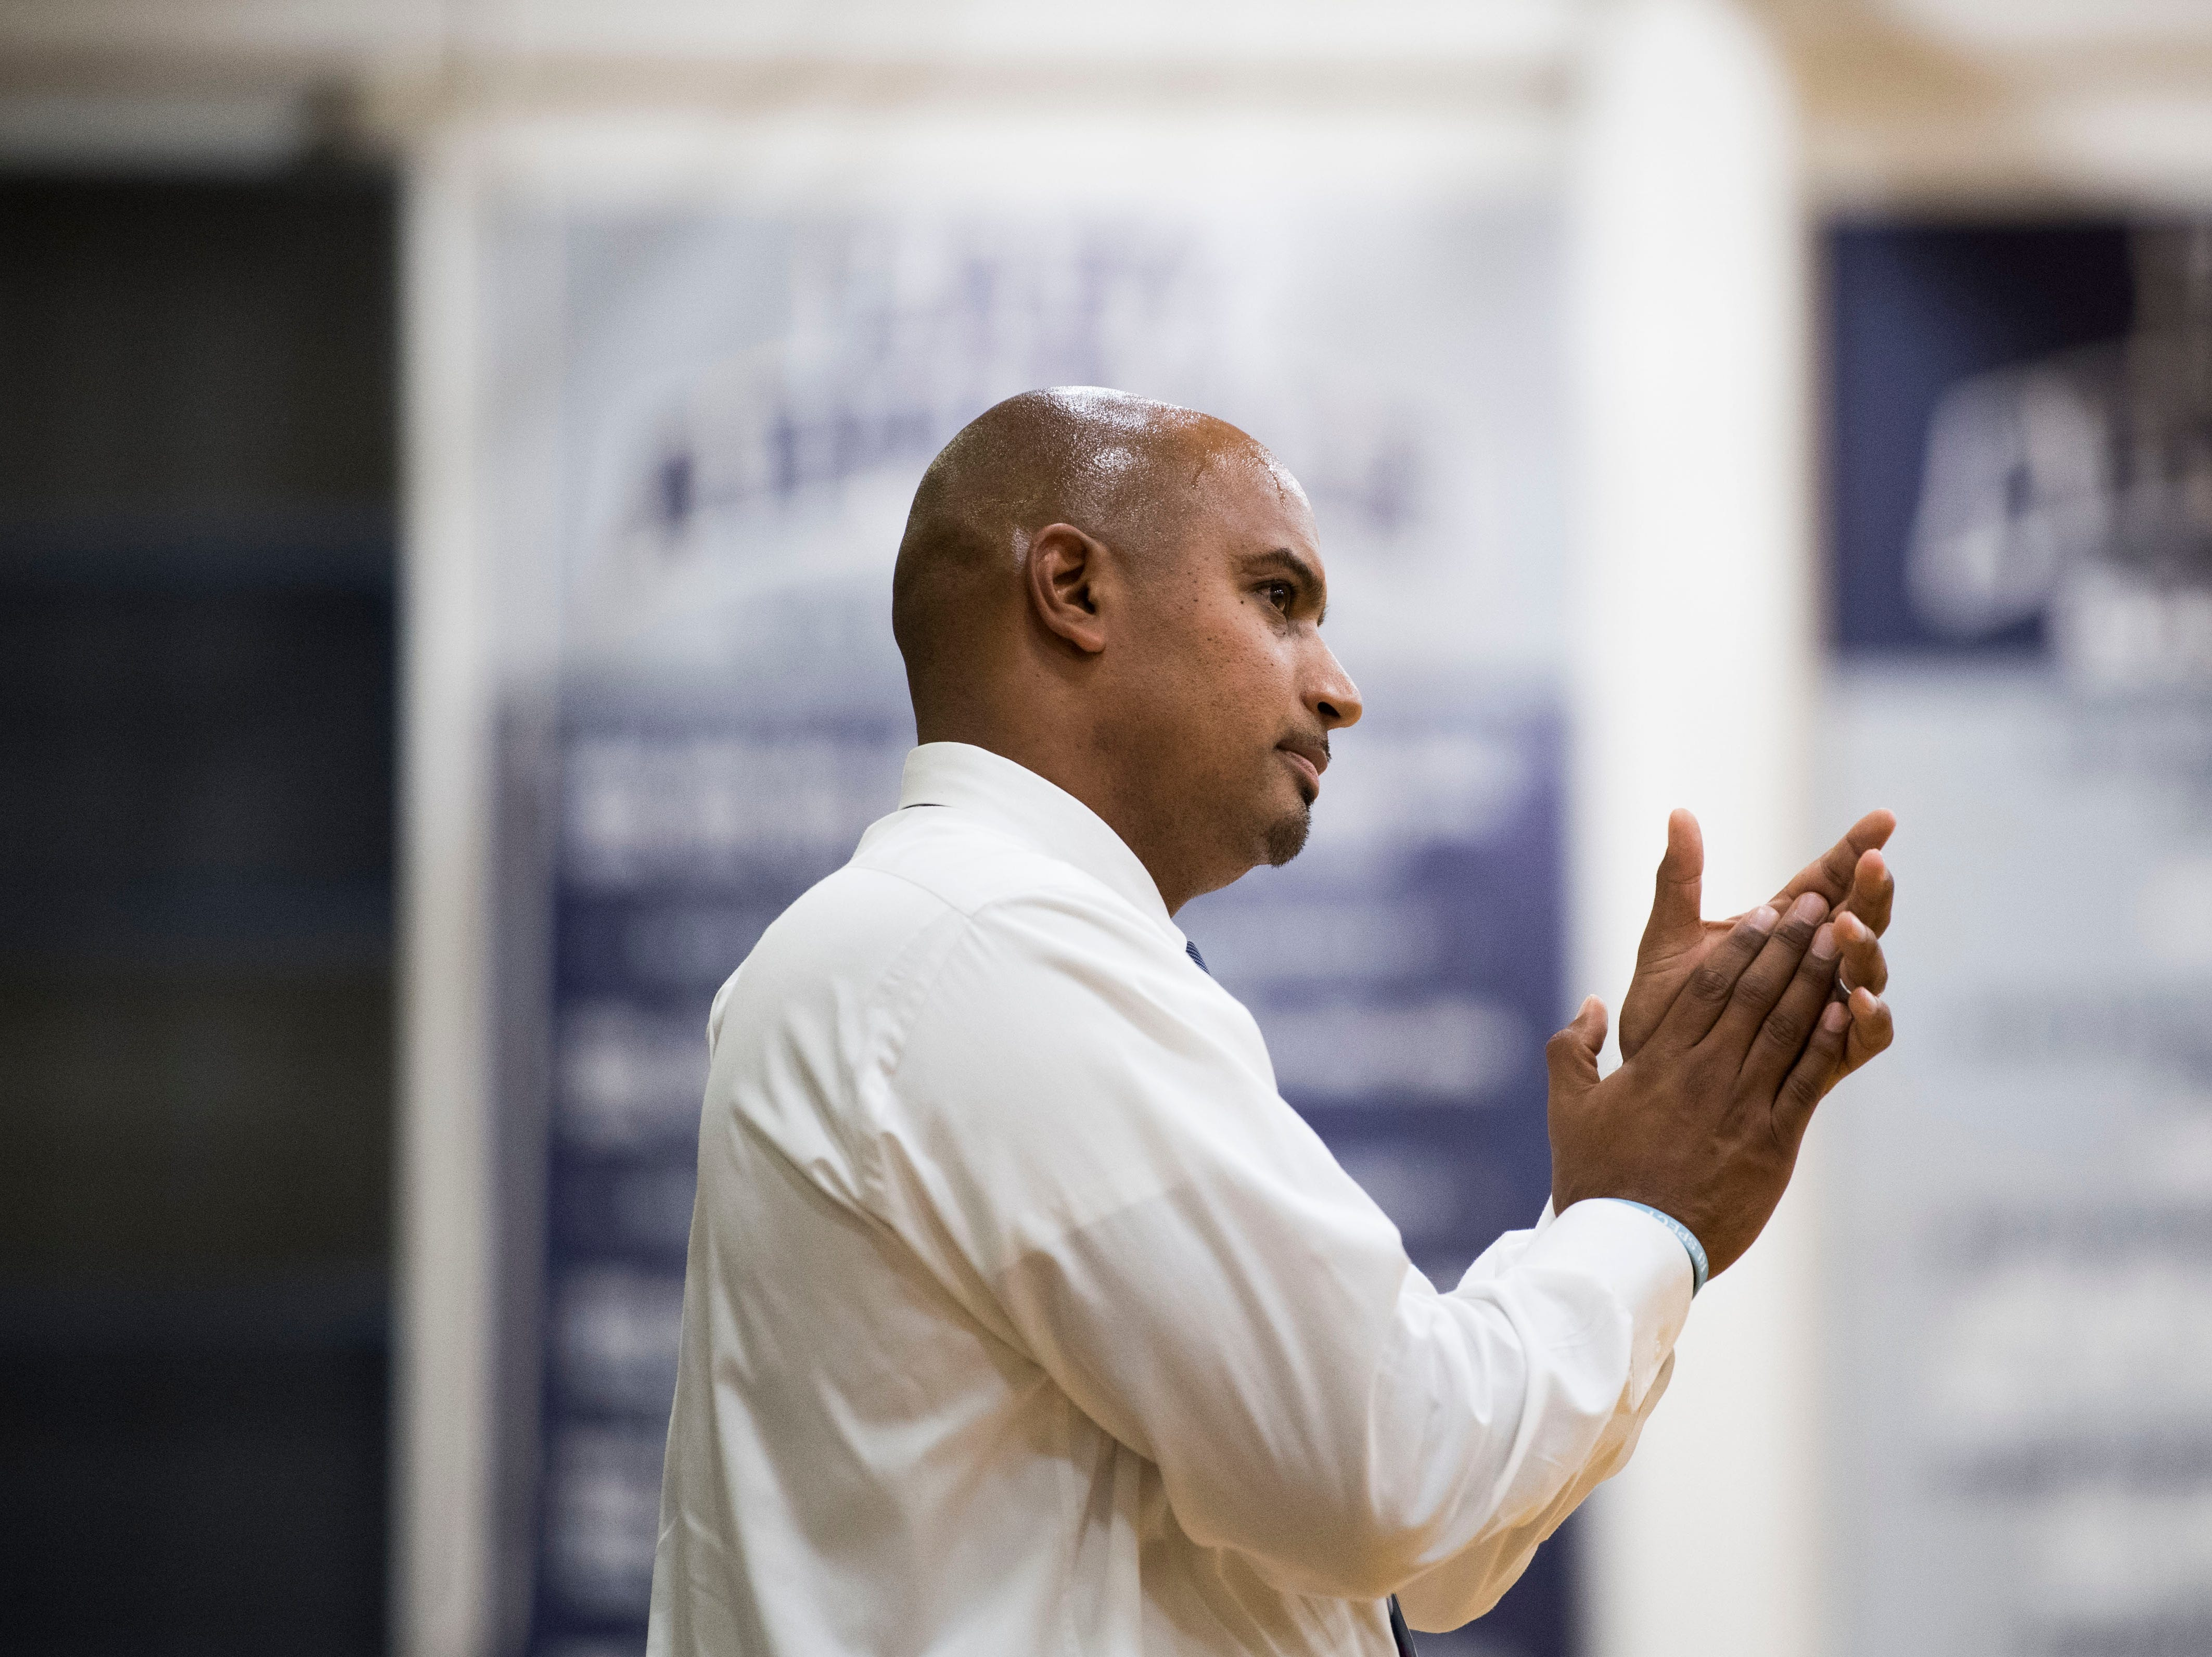 Farragut head coach Jon Higgins claps from the sidelines during a high school basketball game between Maryville and Farragut at Farragut, Friday, Jan. 11, 2019.